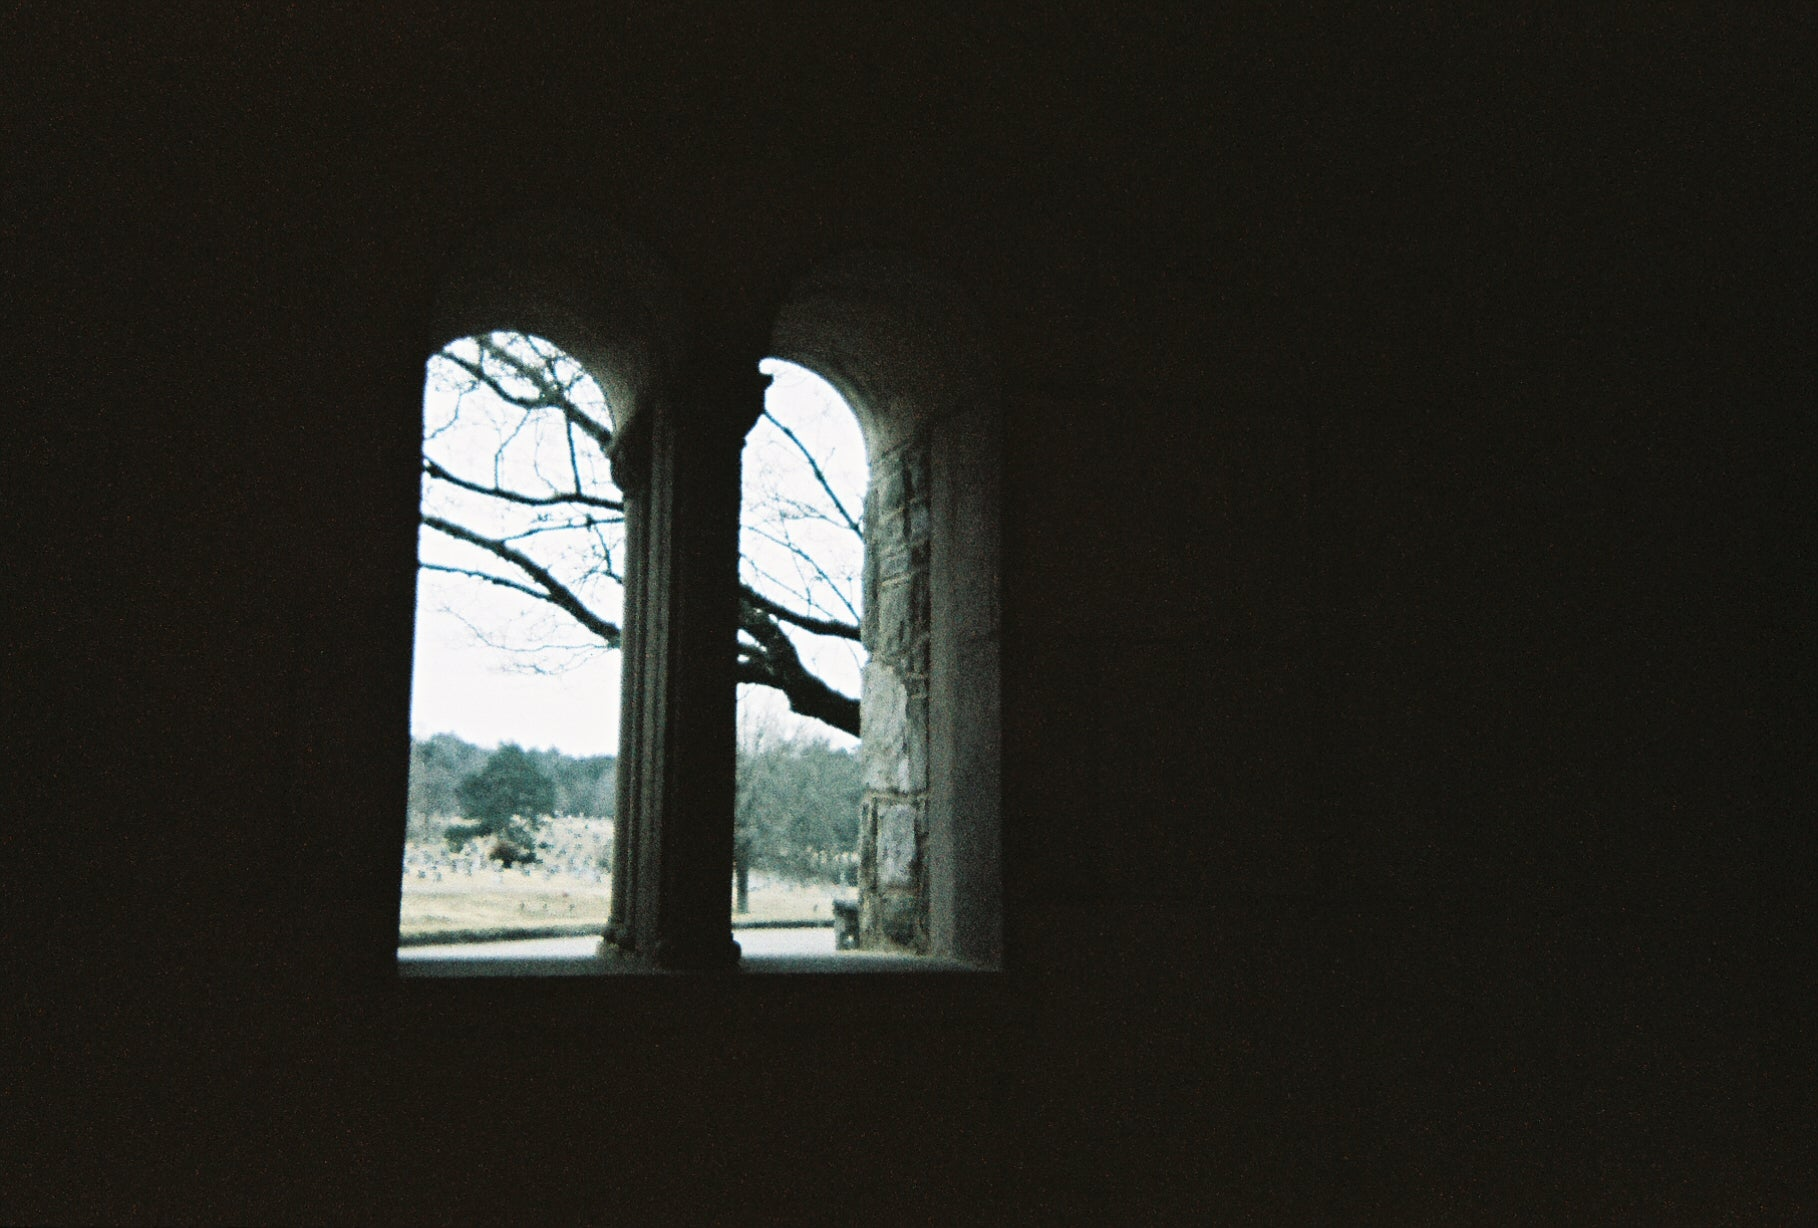 Faded film photo of dark archway looking out at a cemetery on a cloudy day.